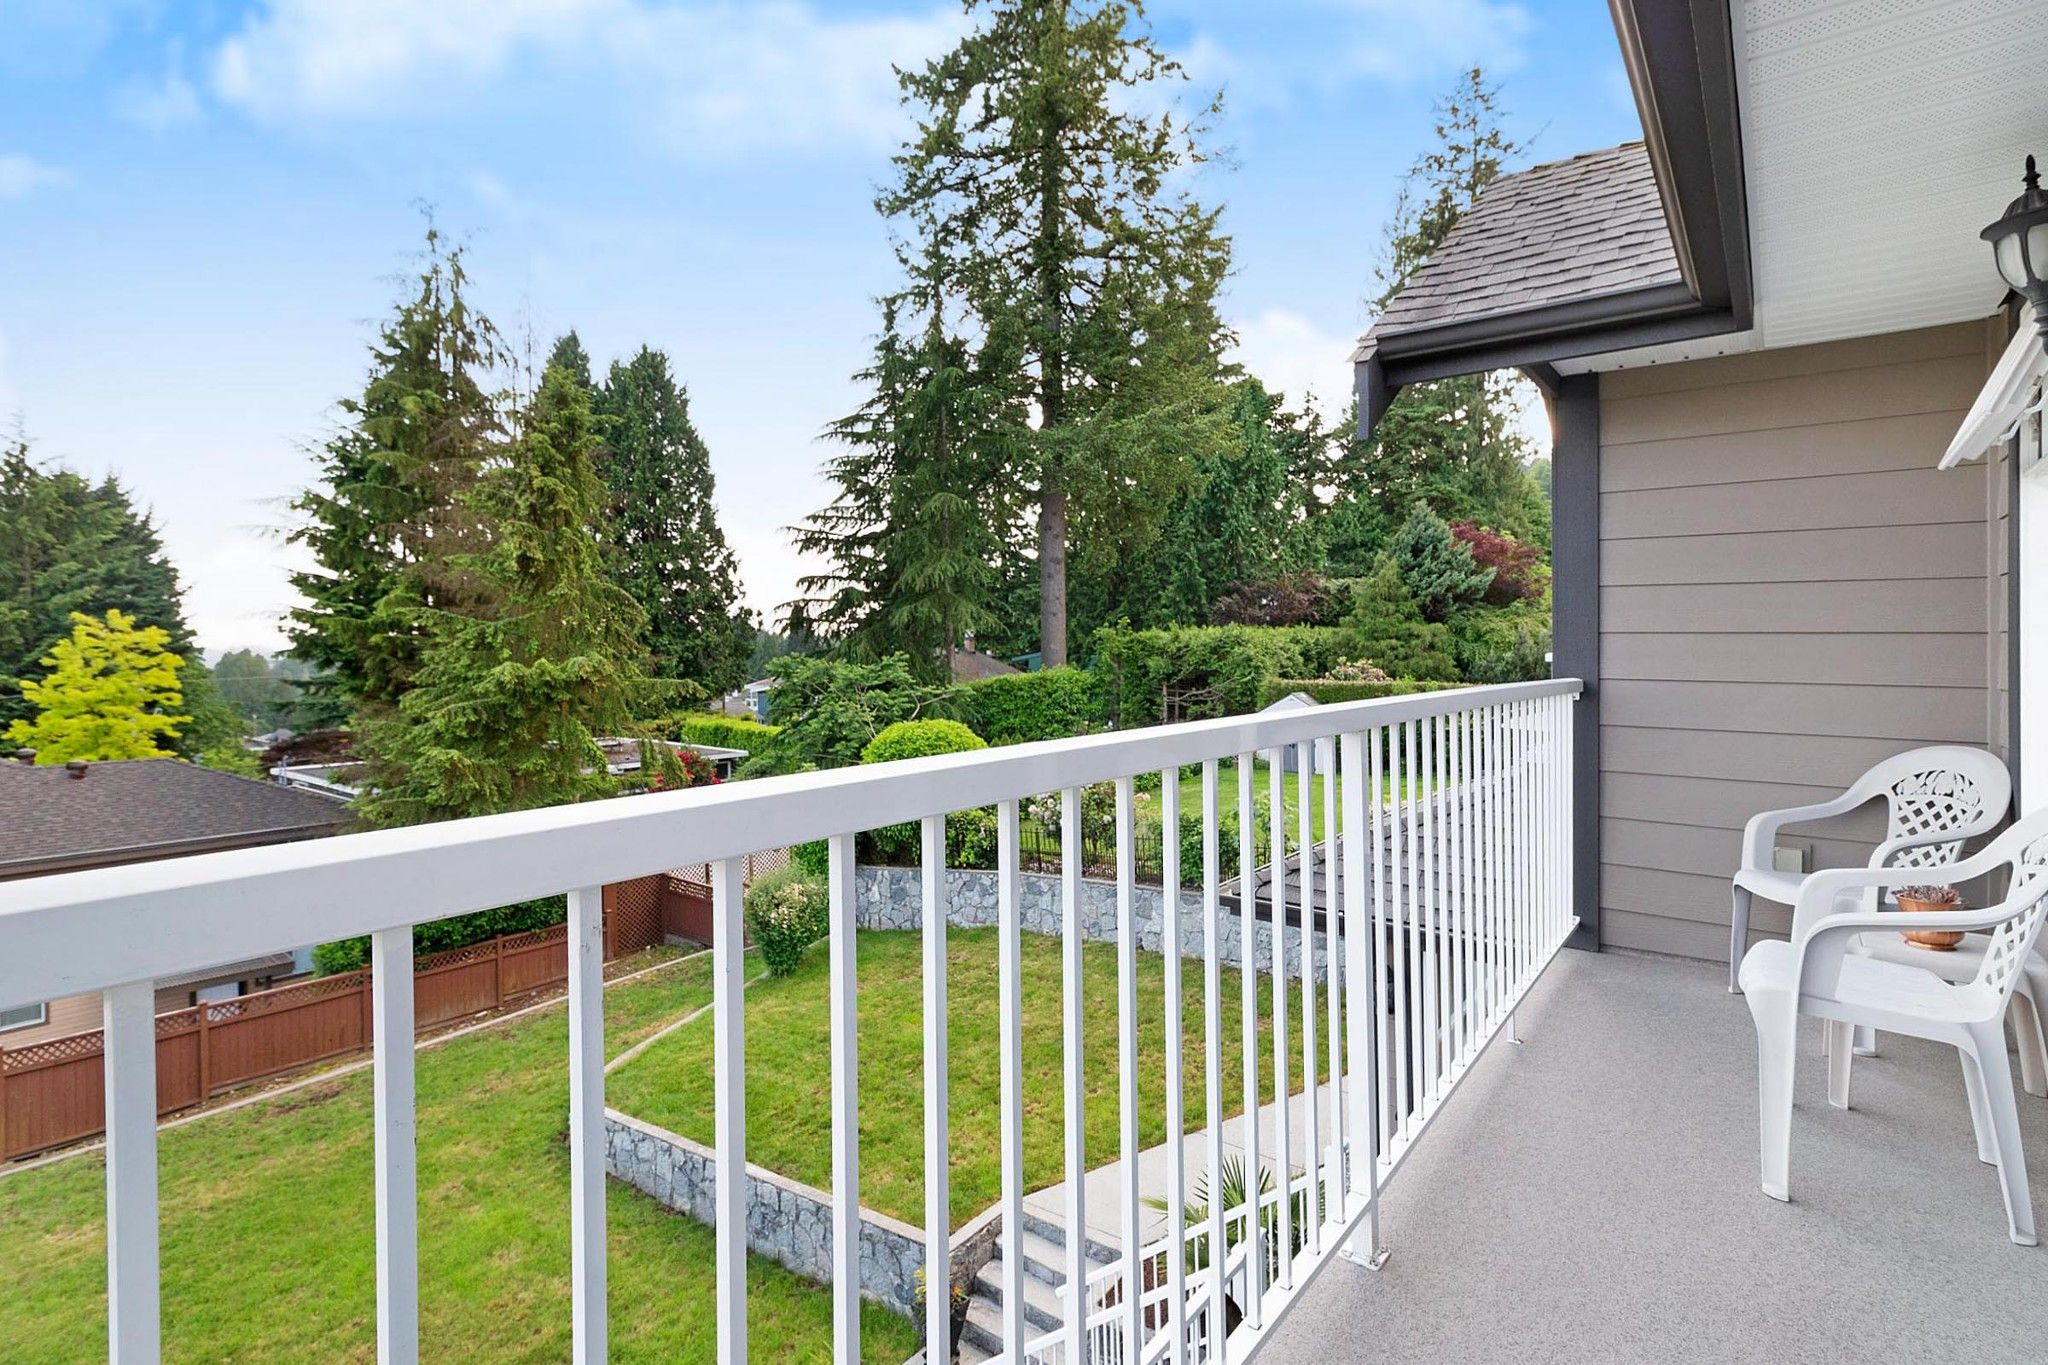 Photo 19: Photos: 1237 DYCK Road in North Vancouver: Lynn Valley House for sale : MLS®# R2374868